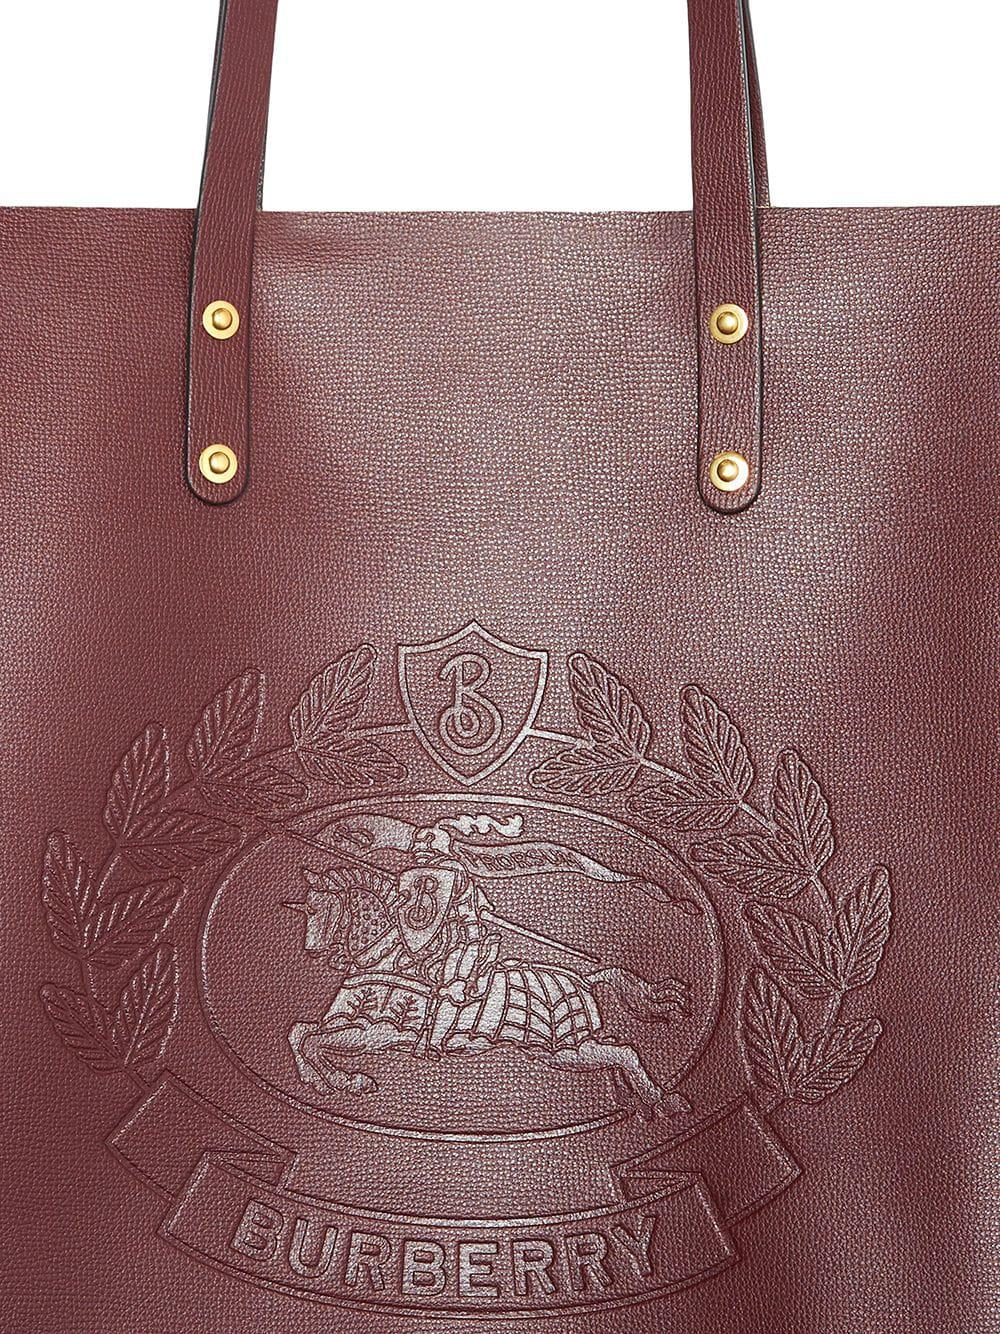 42a3dfa279 Burberry - Multicolor Embossed Crest Leather Tote - Lyst. View fullscreen